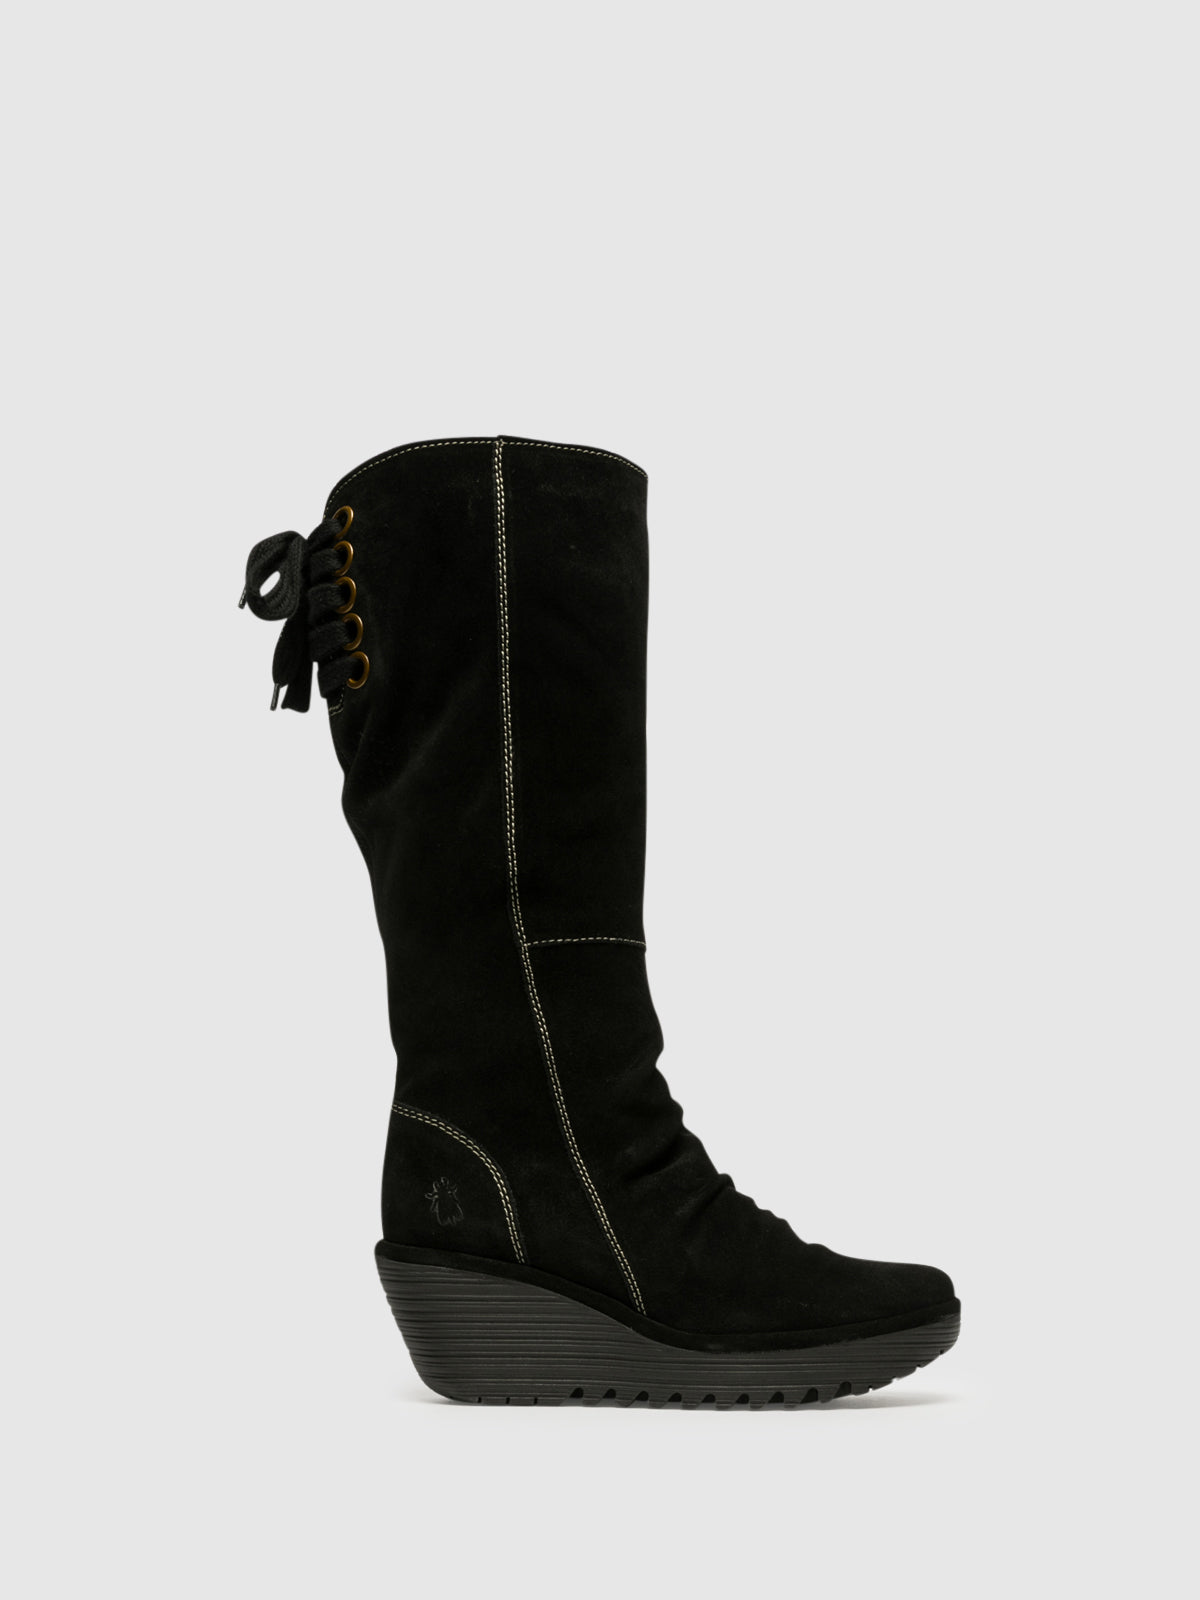 Fly London Botas de Cano-Alto em Preto